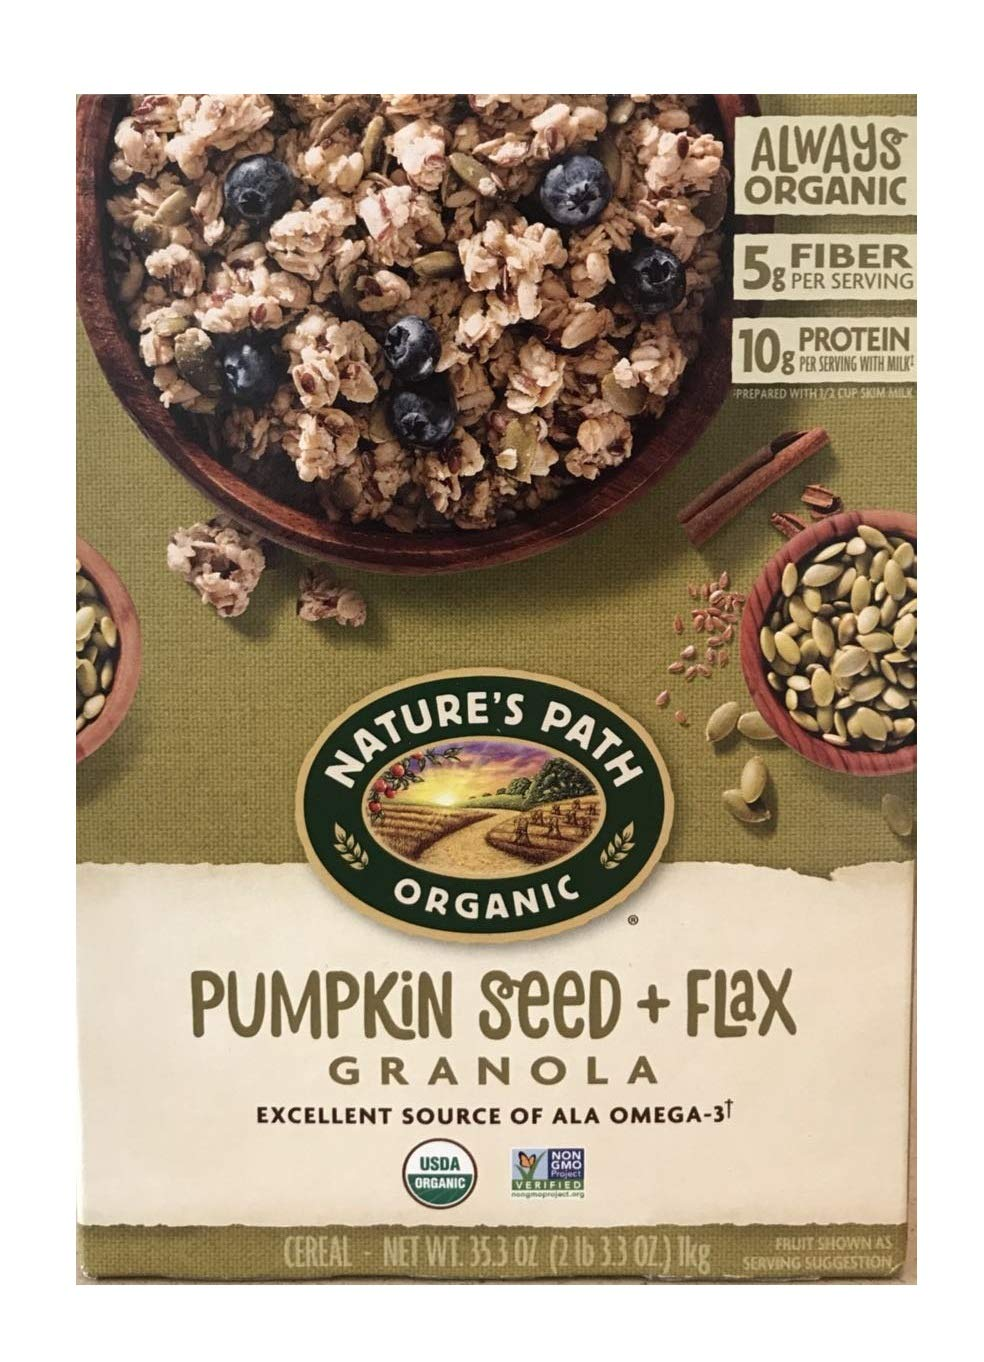 Natures Path Organic Pumpkin Seed & Flax, 35.3 Oz